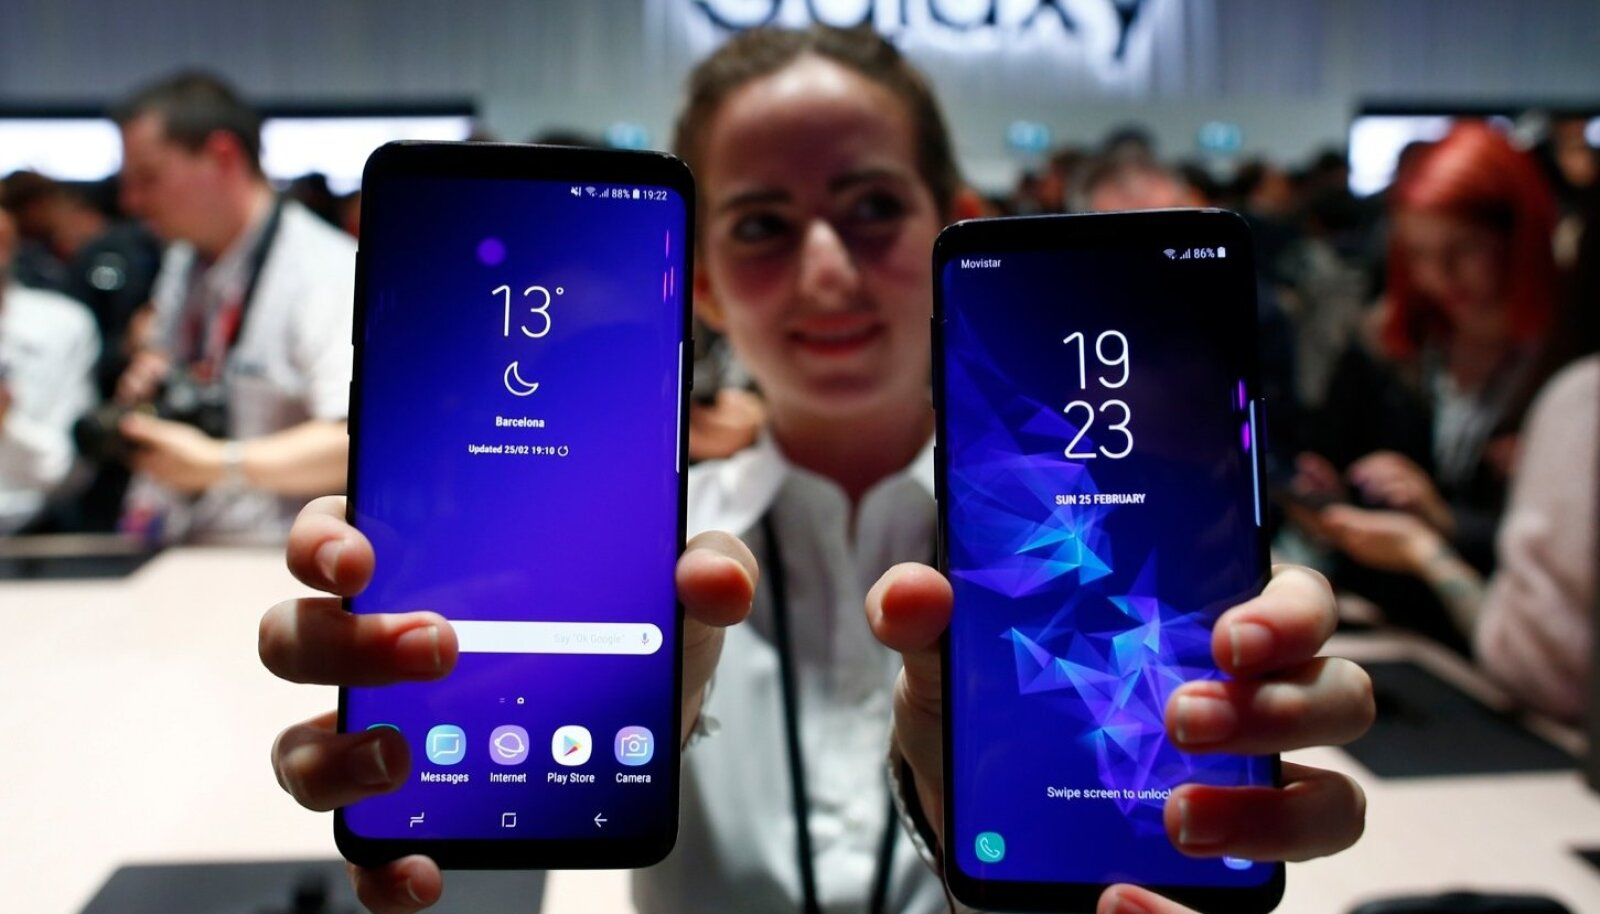 Spain Wireless Show Flagship Phones